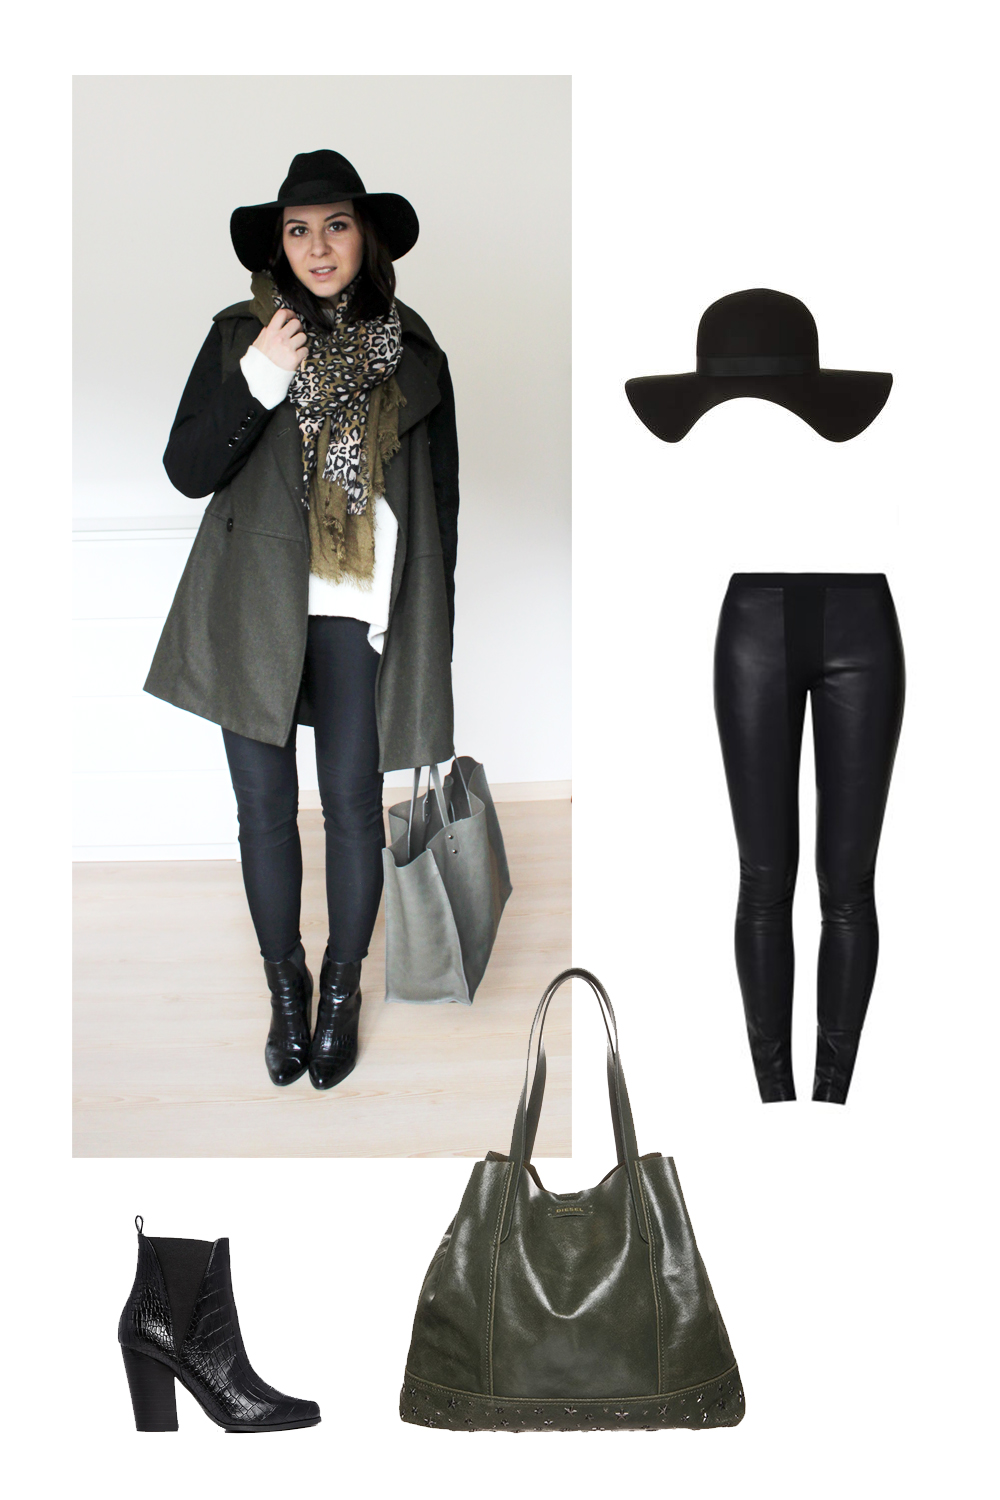 who is mocca, weekly outfit review, fashionblog tirol, fashionblog österreich, high waist hose H&M, shopper diesel zara khaki, mantel mango khaki schwarz, schal leopard two tone, fedora hut schlapphut topshop, oversize pullover weiß zara